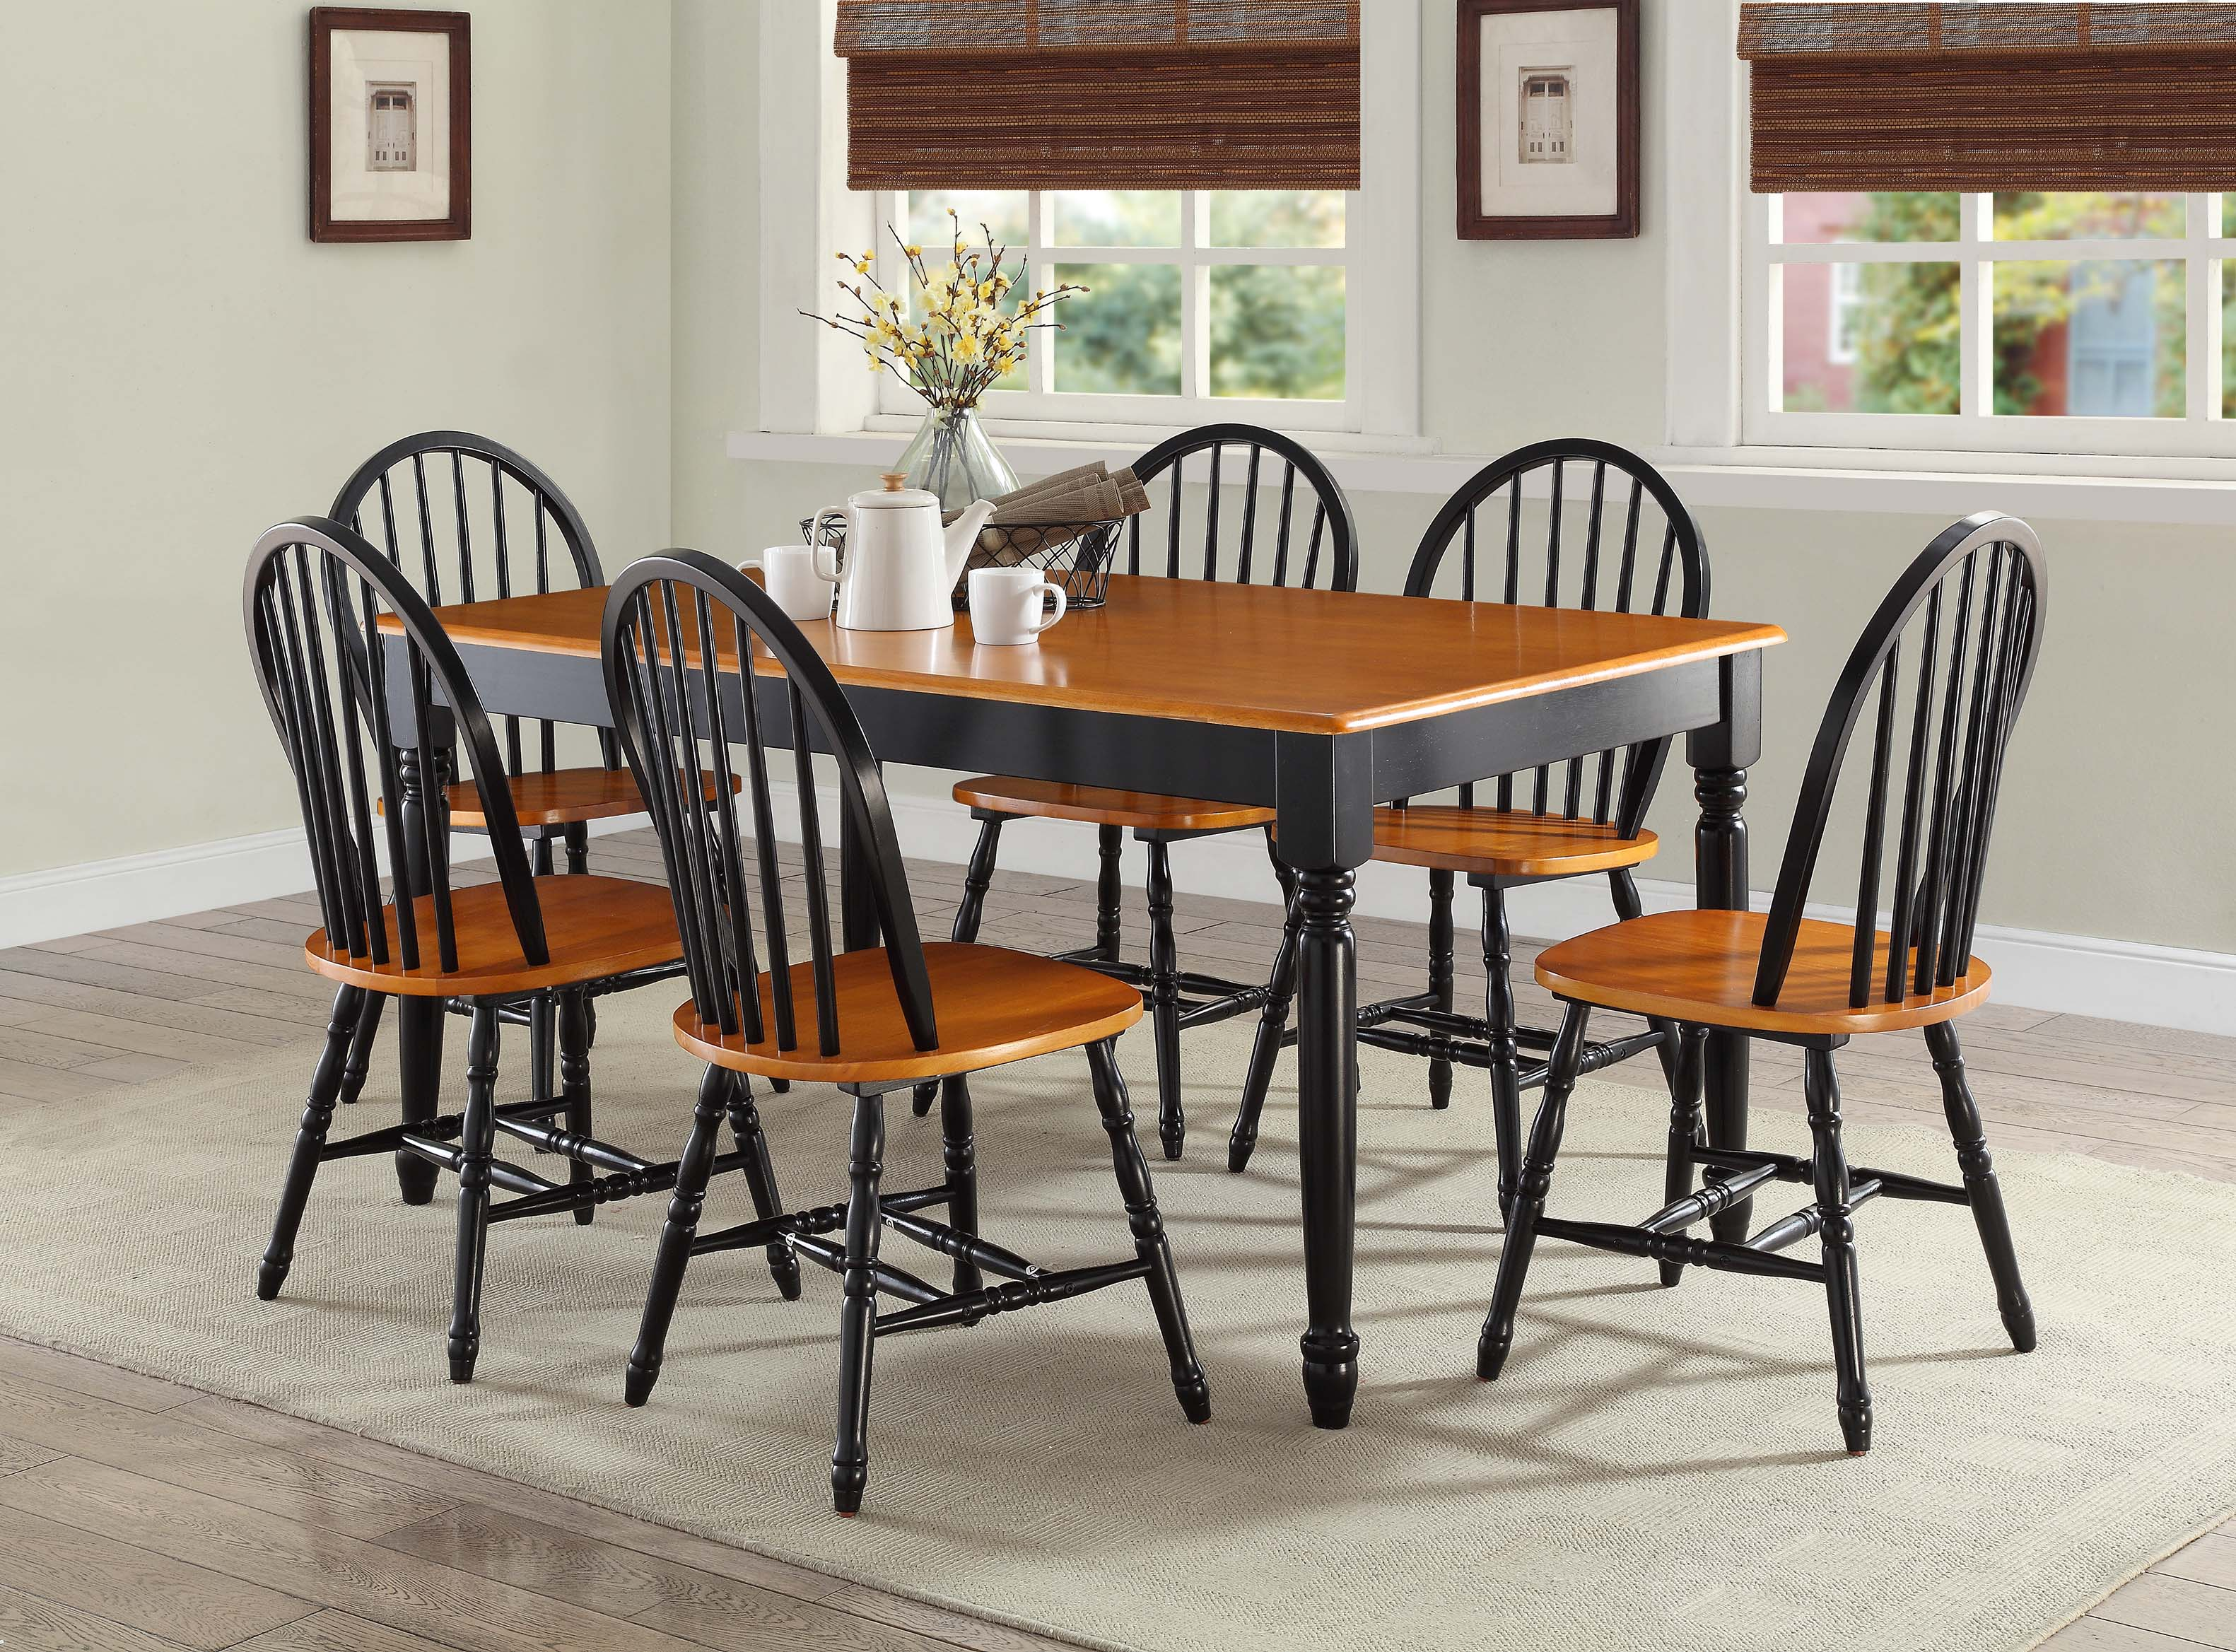 kitchen dining 6 person furniture table chairs bench room blackoak wood indoor ebay - Dining Room Table With Chairs And Bench